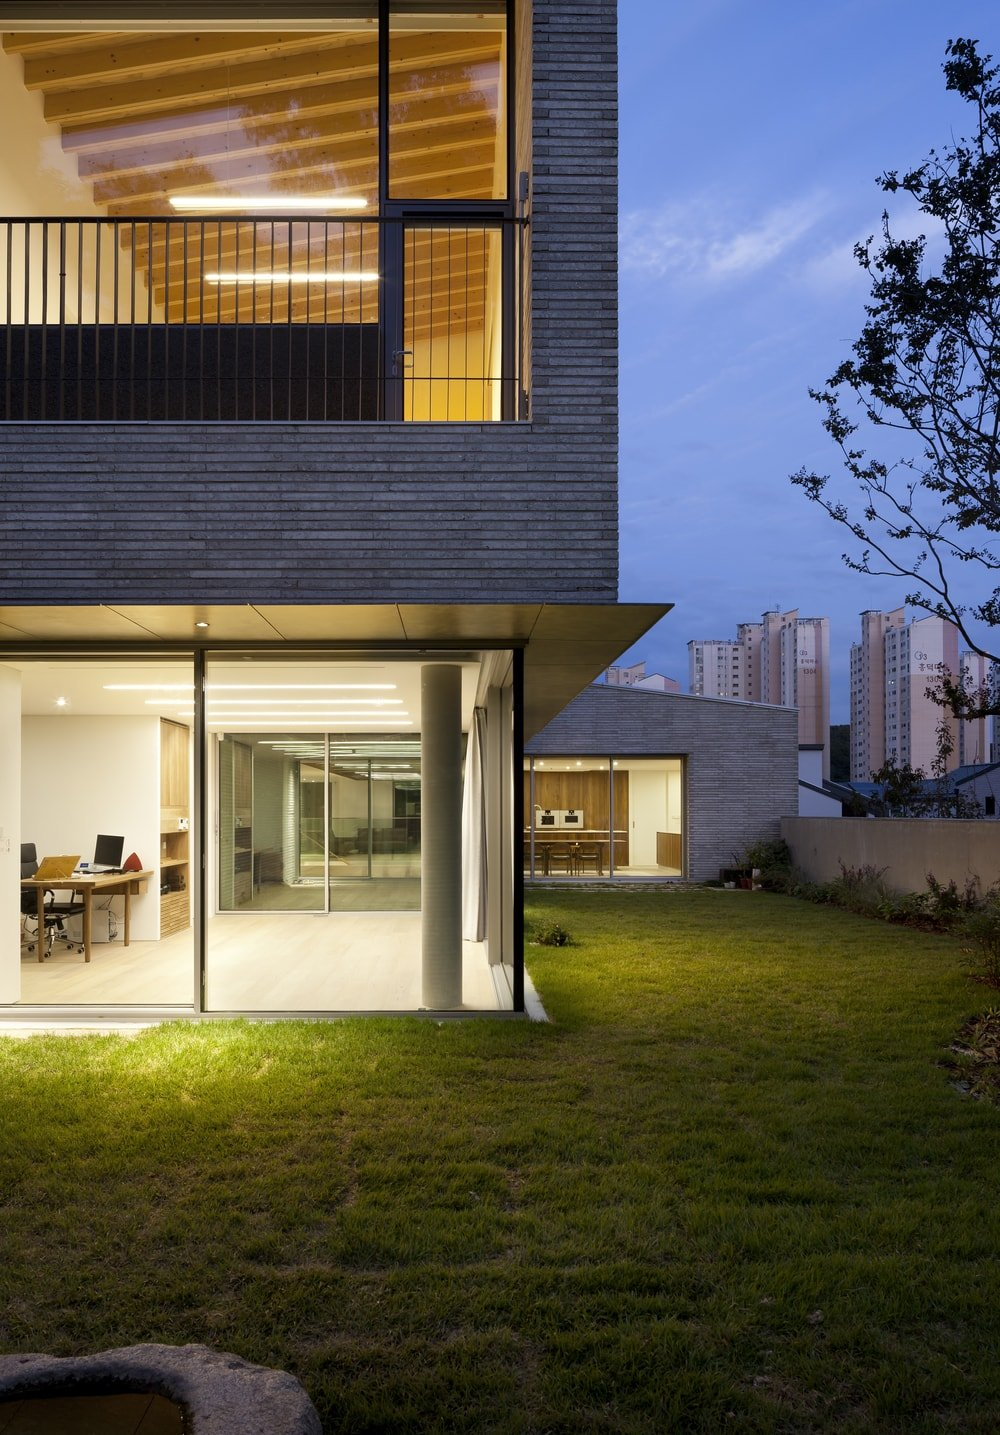 This is a nighttime view of the glass walls of the house that give glimpses of the interiors.